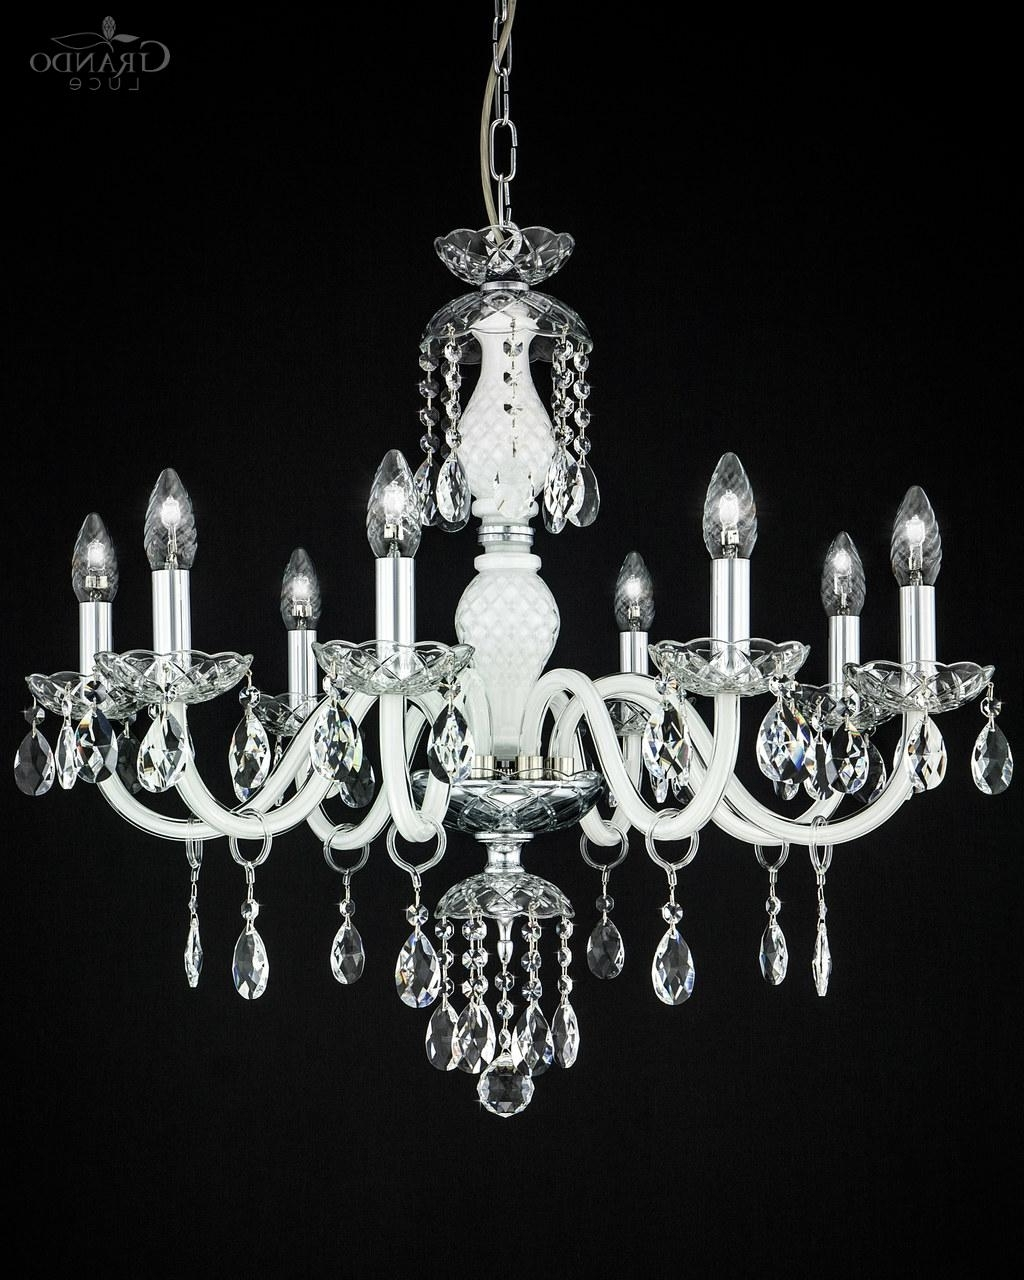 Widely Used White And Crystal Chandeliers In 104/ch 8 Chrome White Crystal Chandelier With Swrovski Spectra (View 3 of 15)